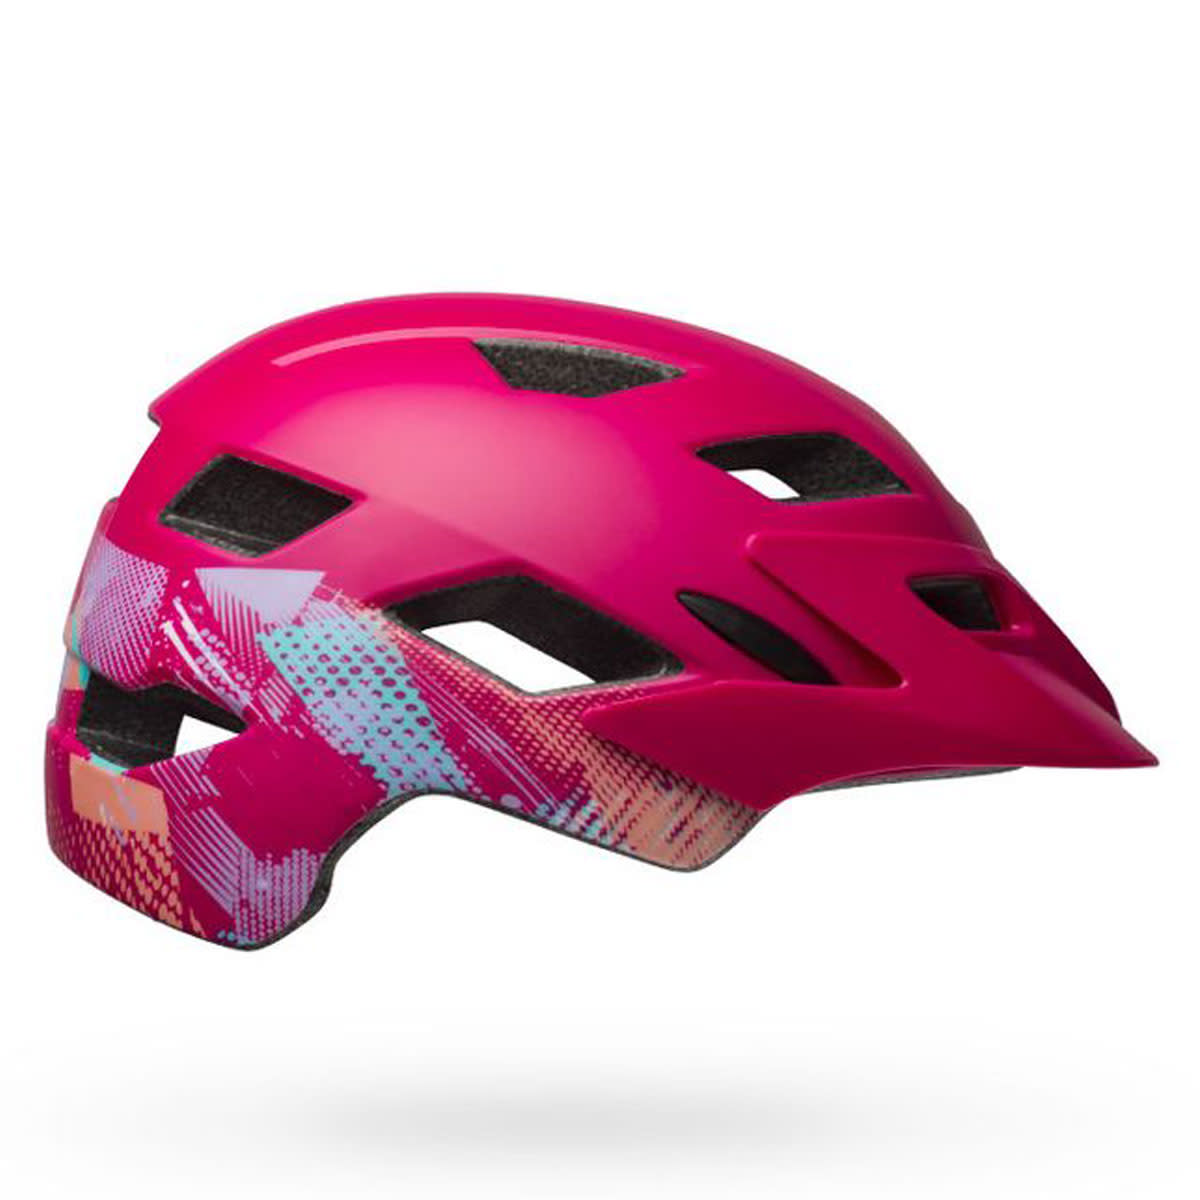 CASQUE VELO BELL SIDETRACK YOUTH 2019 FUSHIA GRAPHIQUE